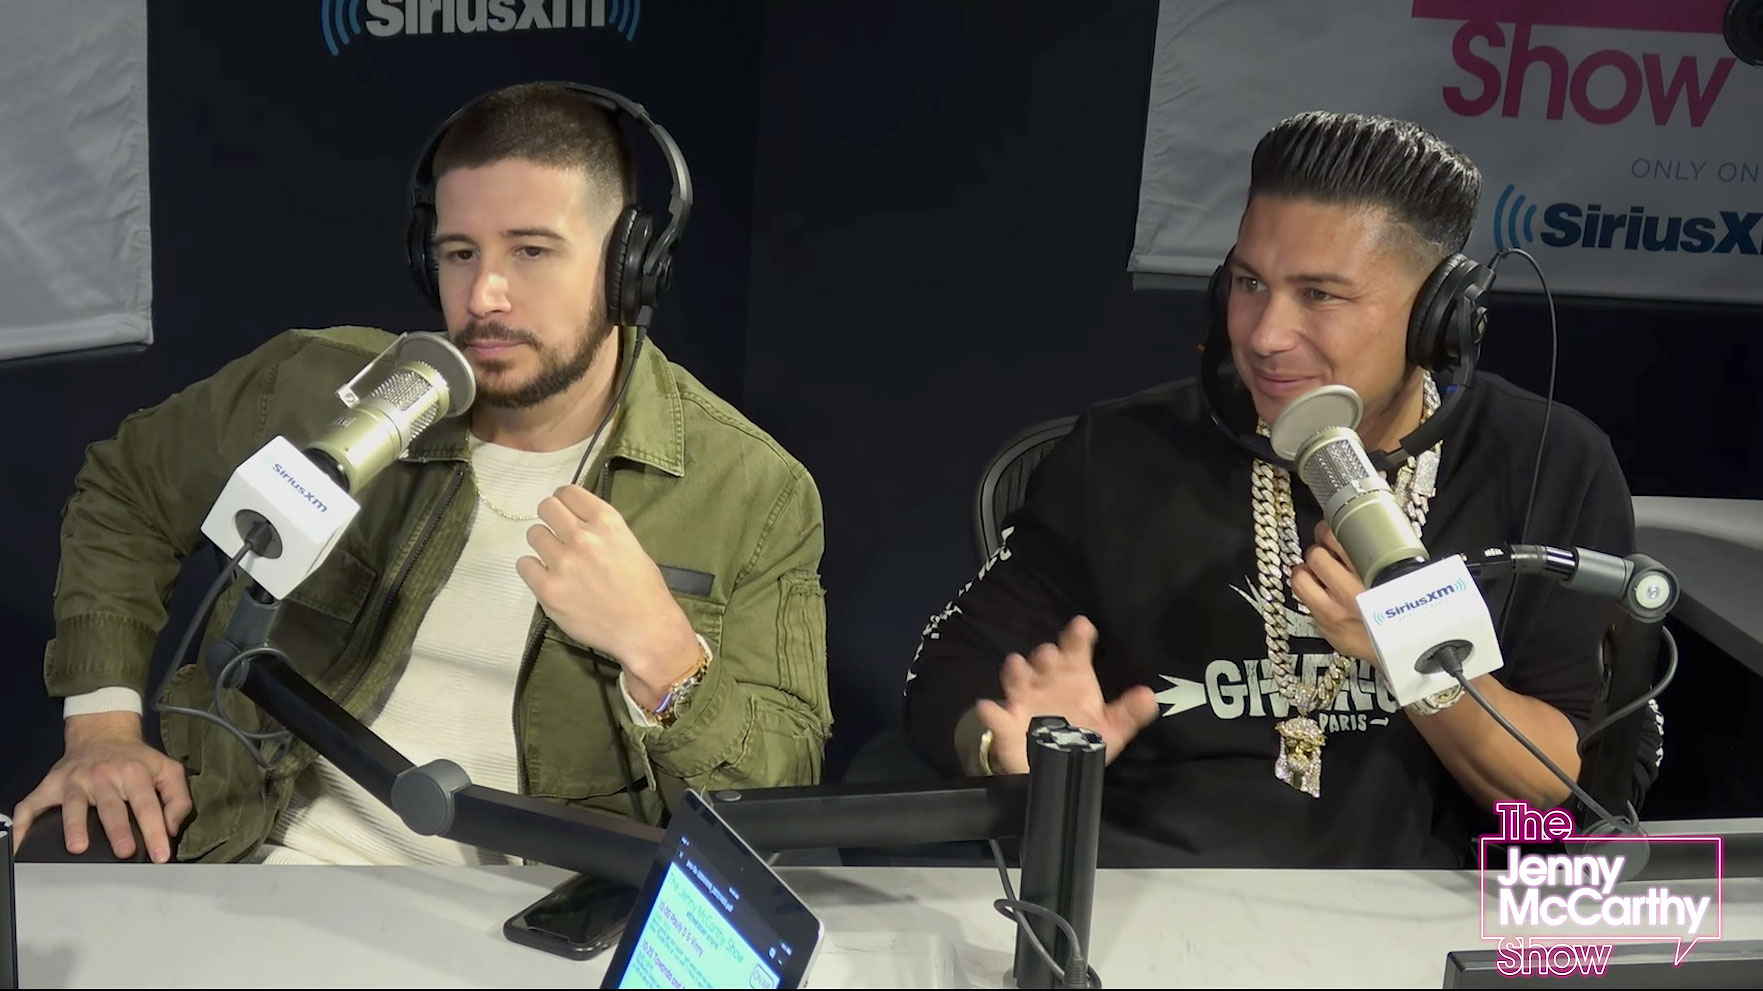 Vinny and Pauly D Talk About The Situation on Jenny McCarthy XM Show - Vinny Guadagnino and Pauly D talk about Mike Sorrentino on SiriusXM's The Jenny McCarthy Show.